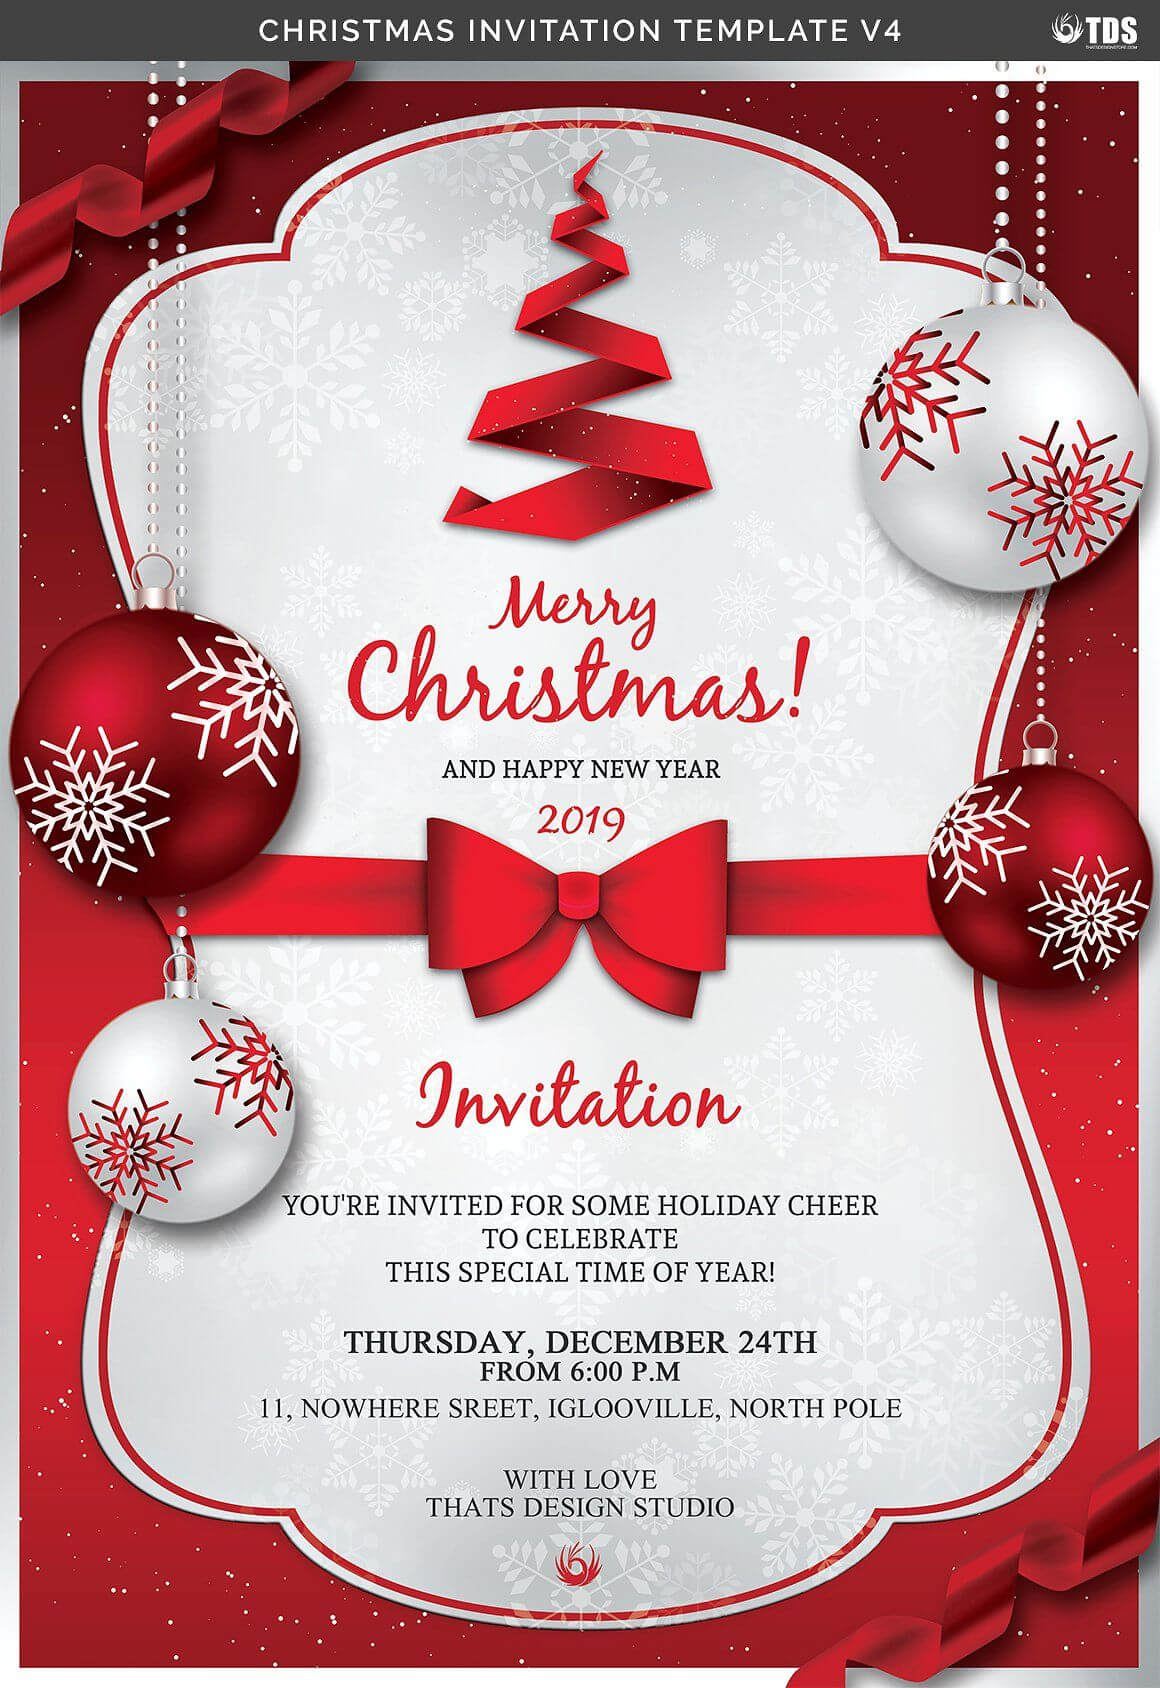 Christmas Invitation Template V4Thats Design Store On Inside Free Christmas Invitation Templates For Word